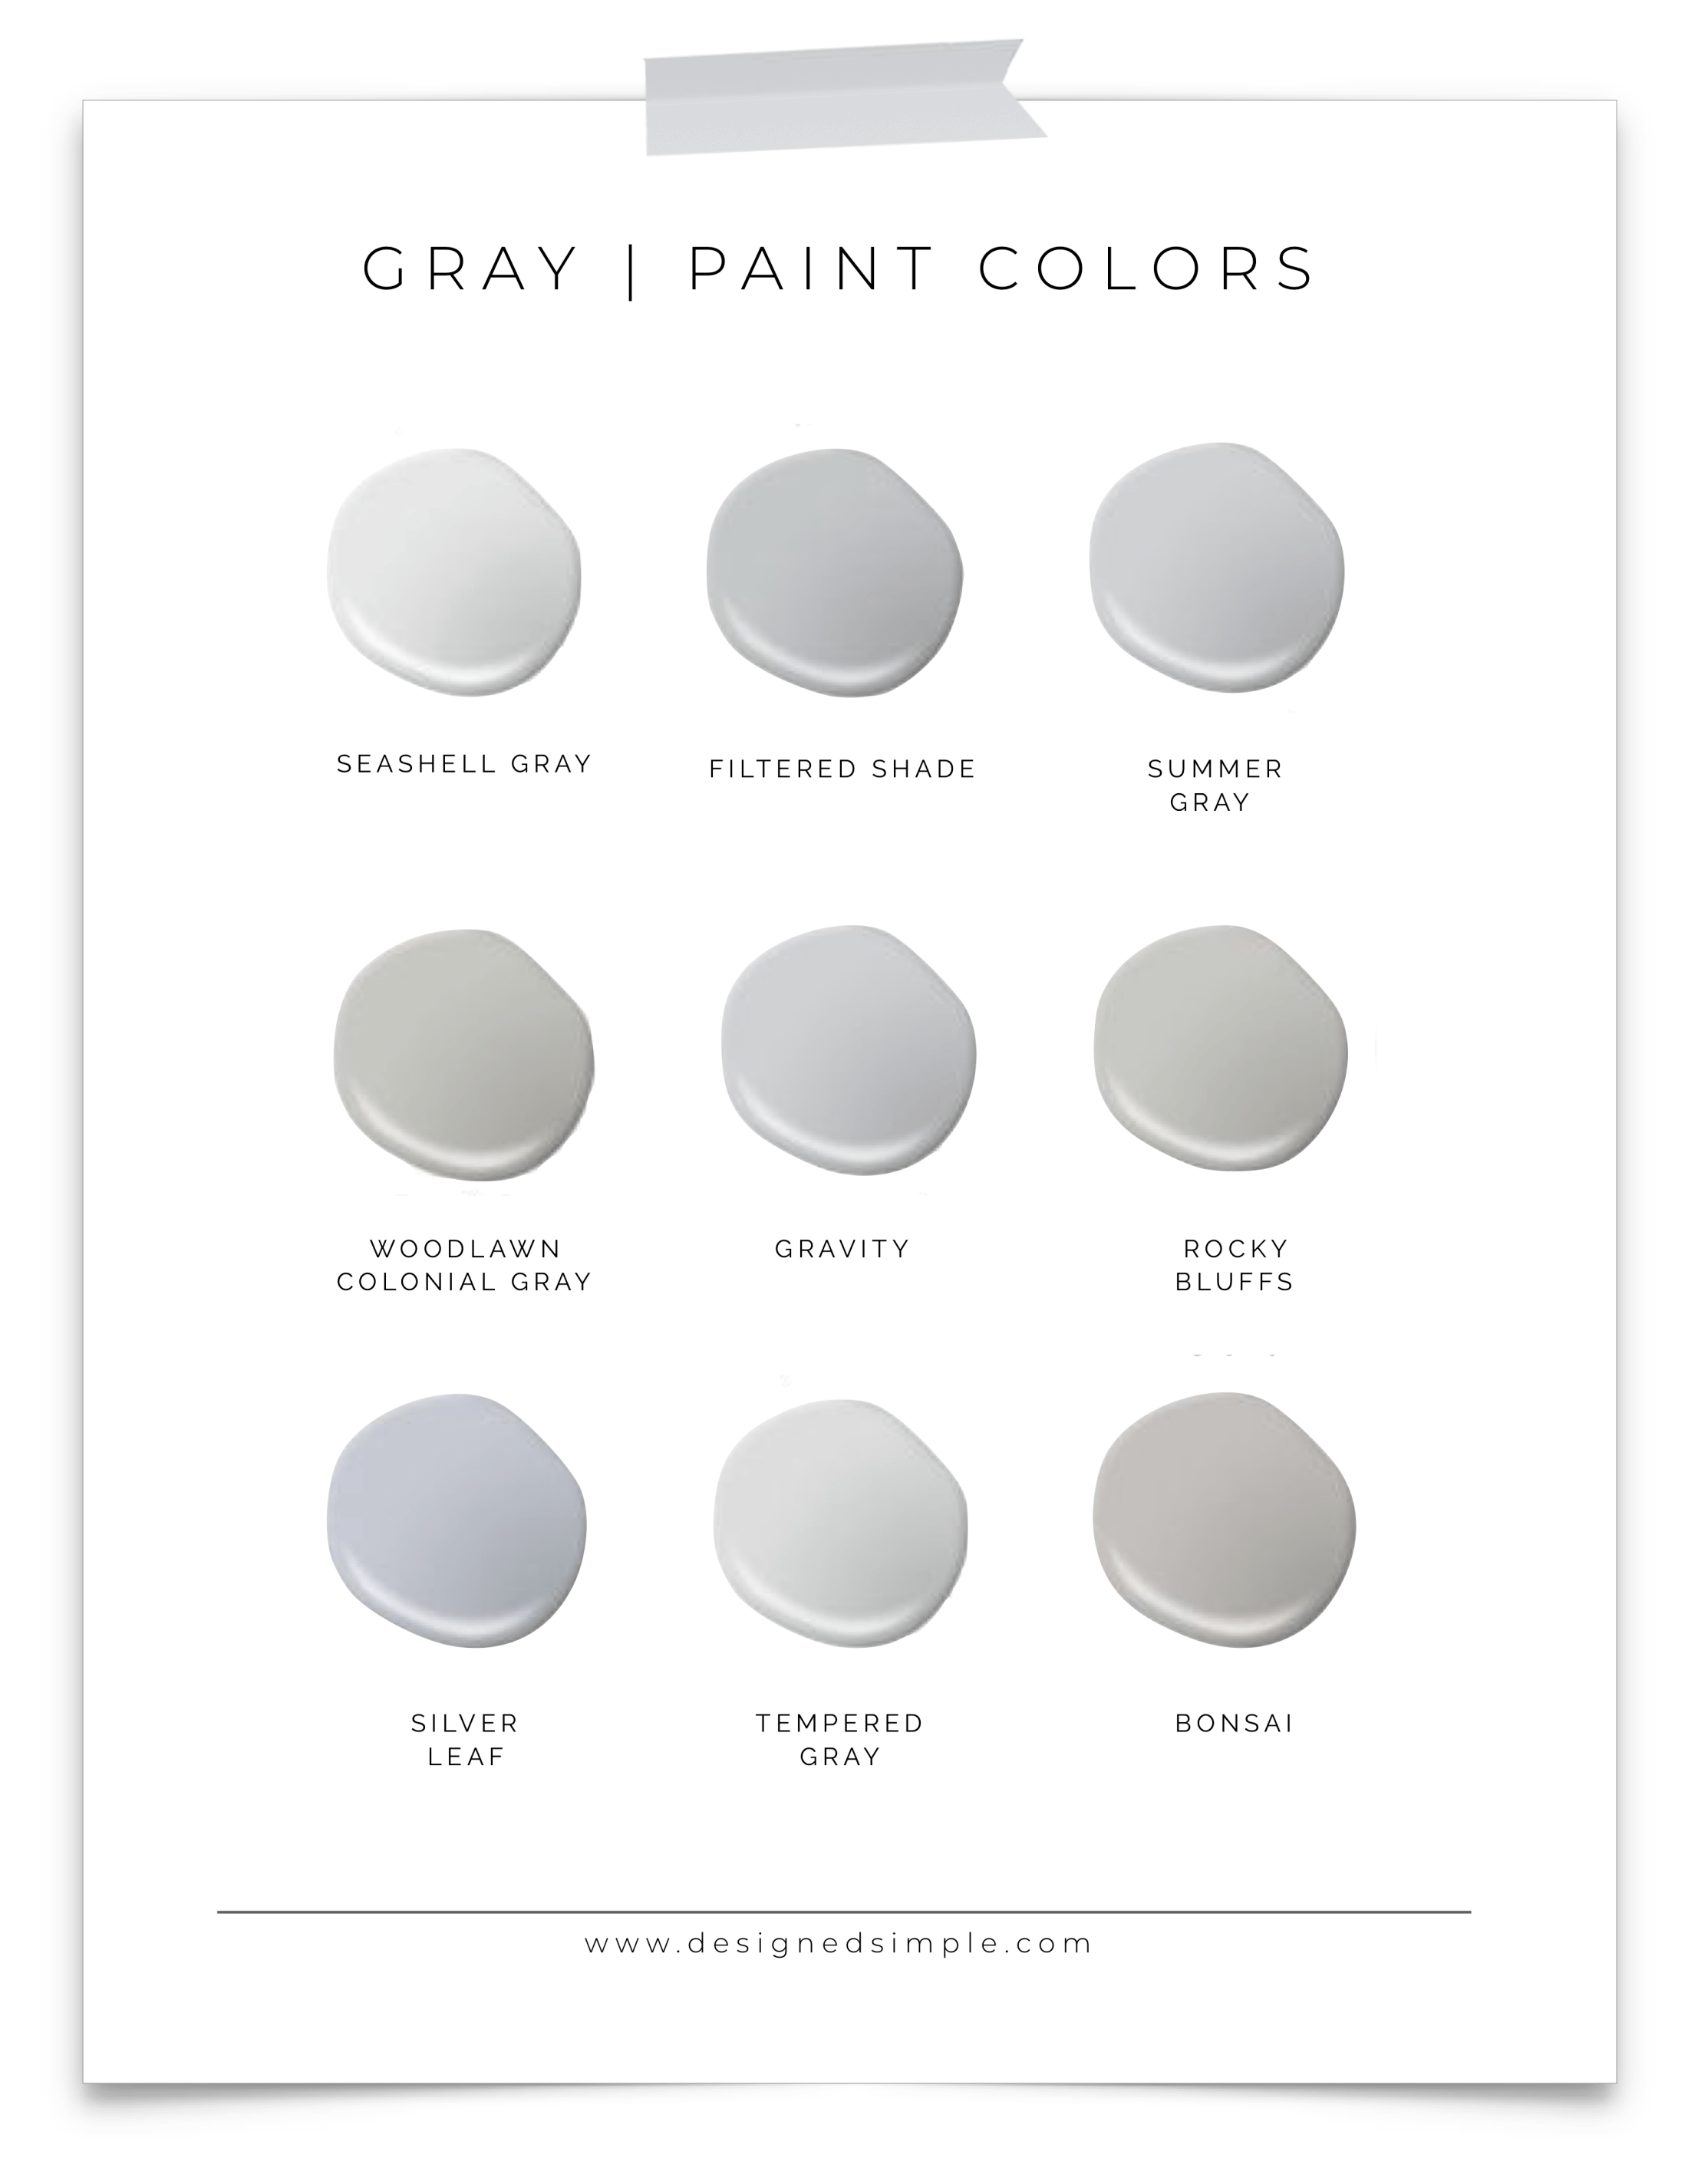 Valspar Gray Paint Colors Favorite Grays In Our Home Designed Simple Designedsimple Com Valspar Paint Colors Gray Office Paint Colors Lowes Paint Colors